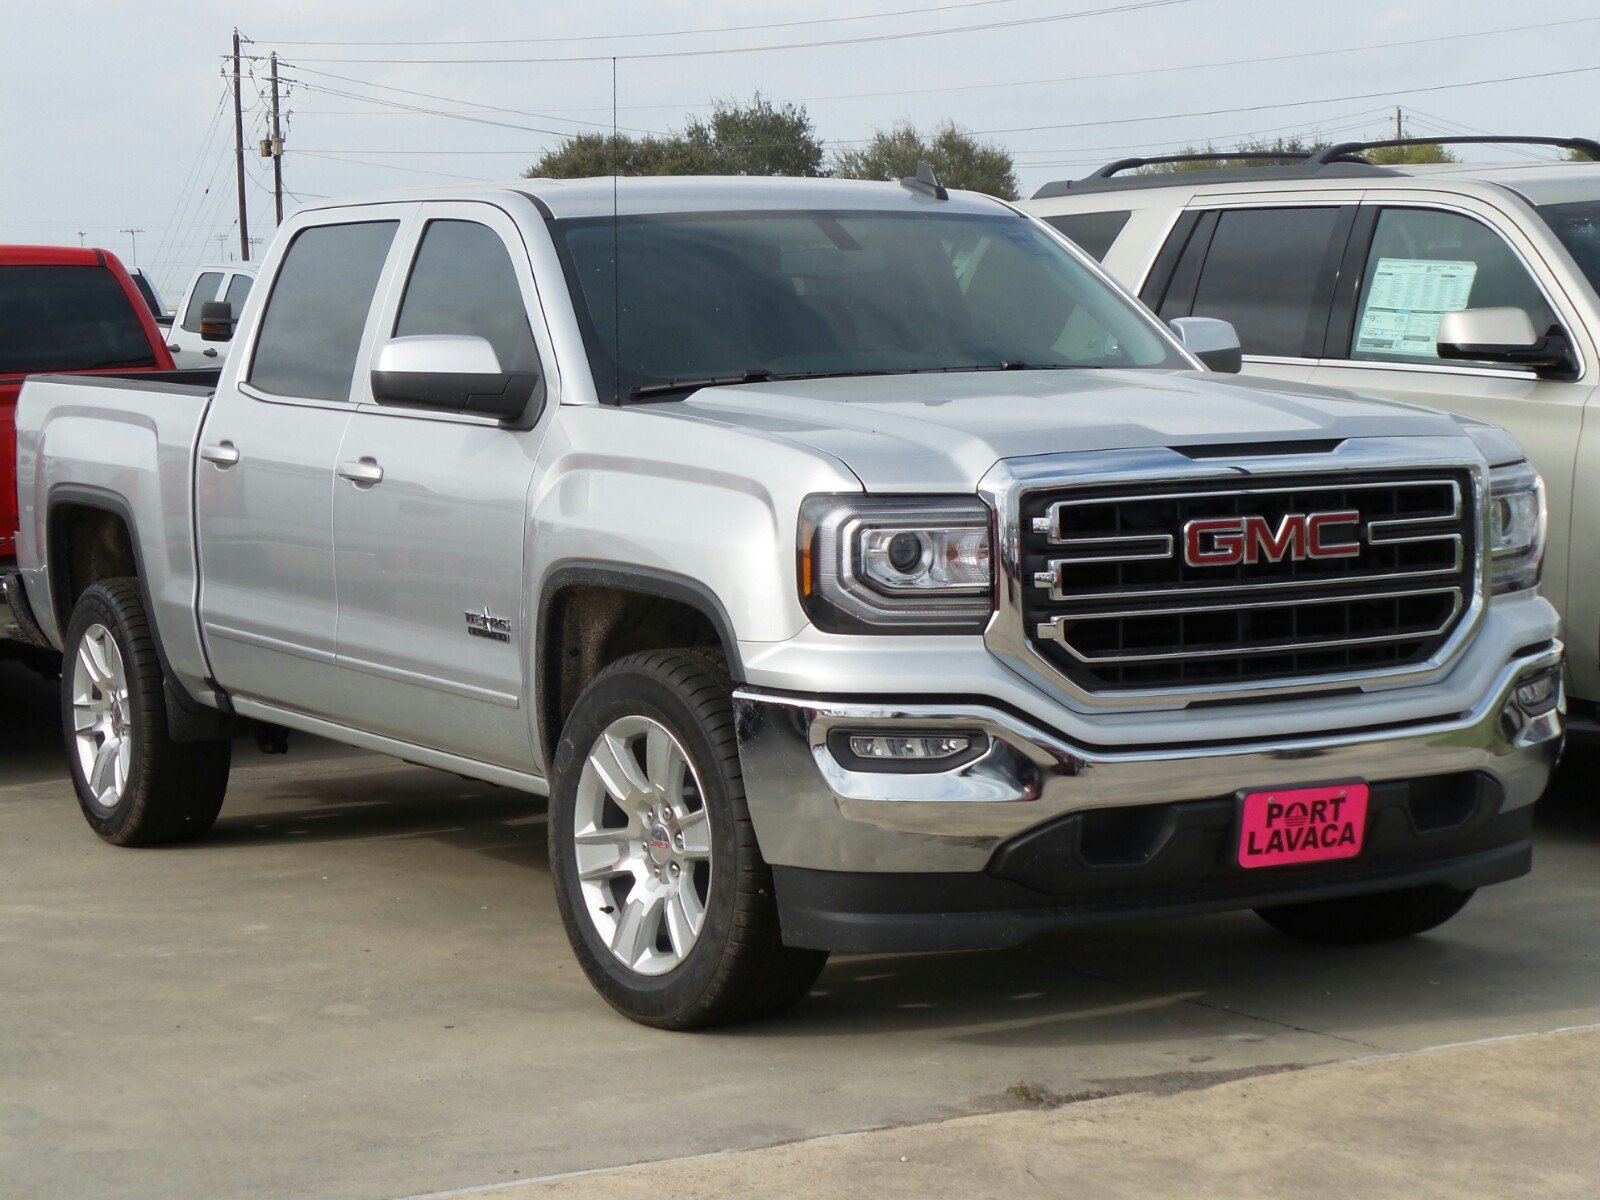 new 2017 gmc sierra 1500 sle crew cab pickup in port lavaca g325277 port lavaca auto group. Black Bedroom Furniture Sets. Home Design Ideas